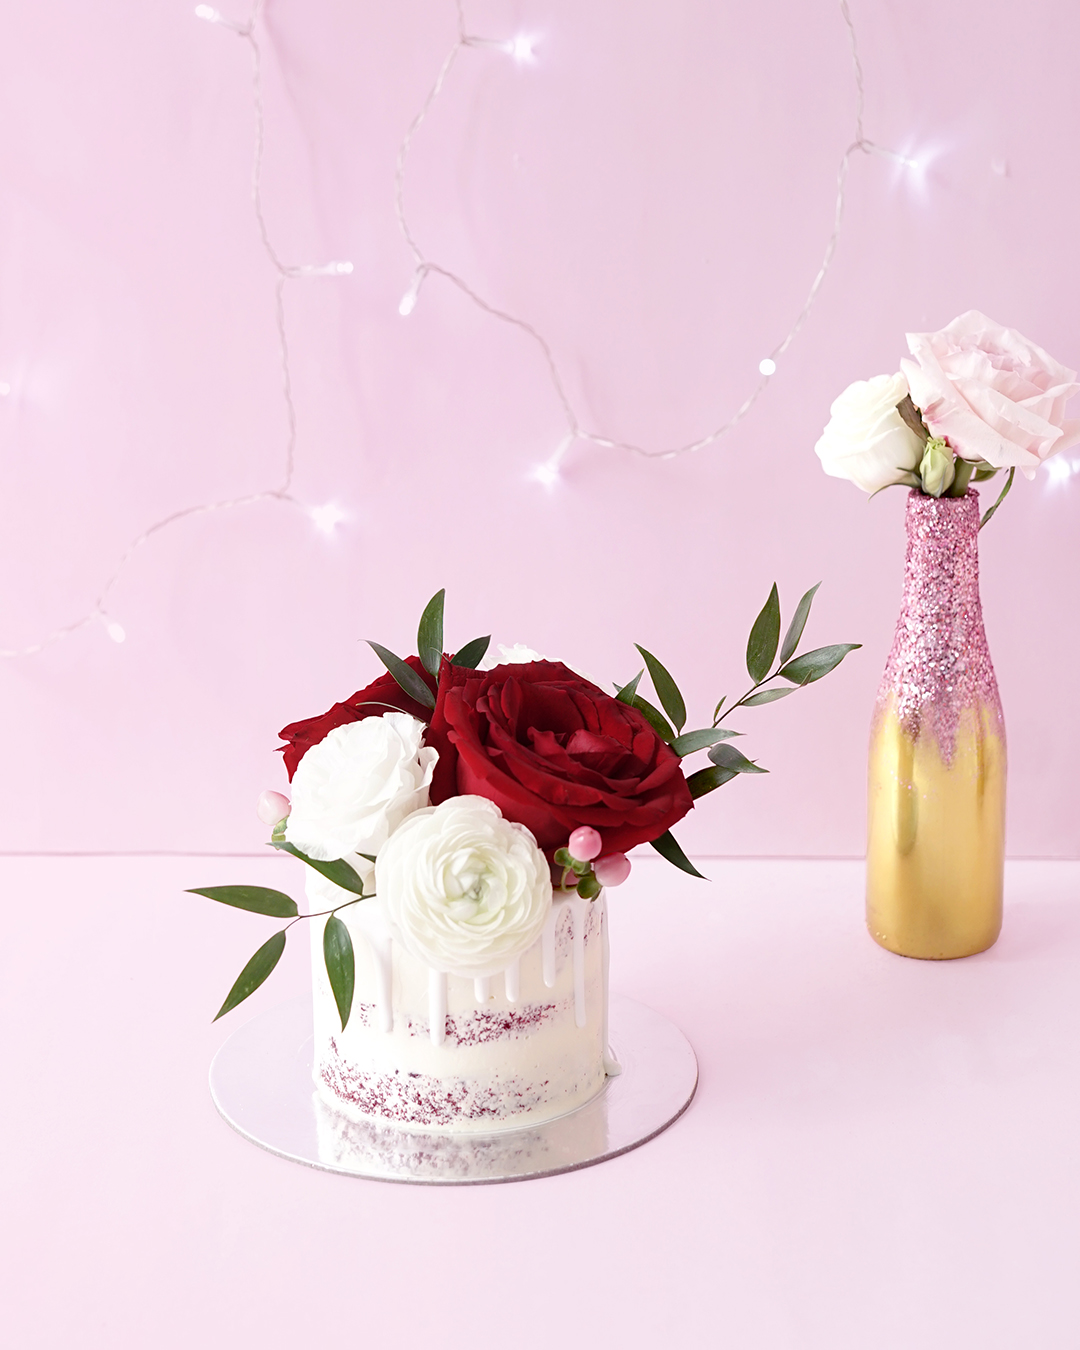 Vive Cake Boutique浪漫推出「Pamper Me Valentine」蛋糕系列- Play Eat Easy